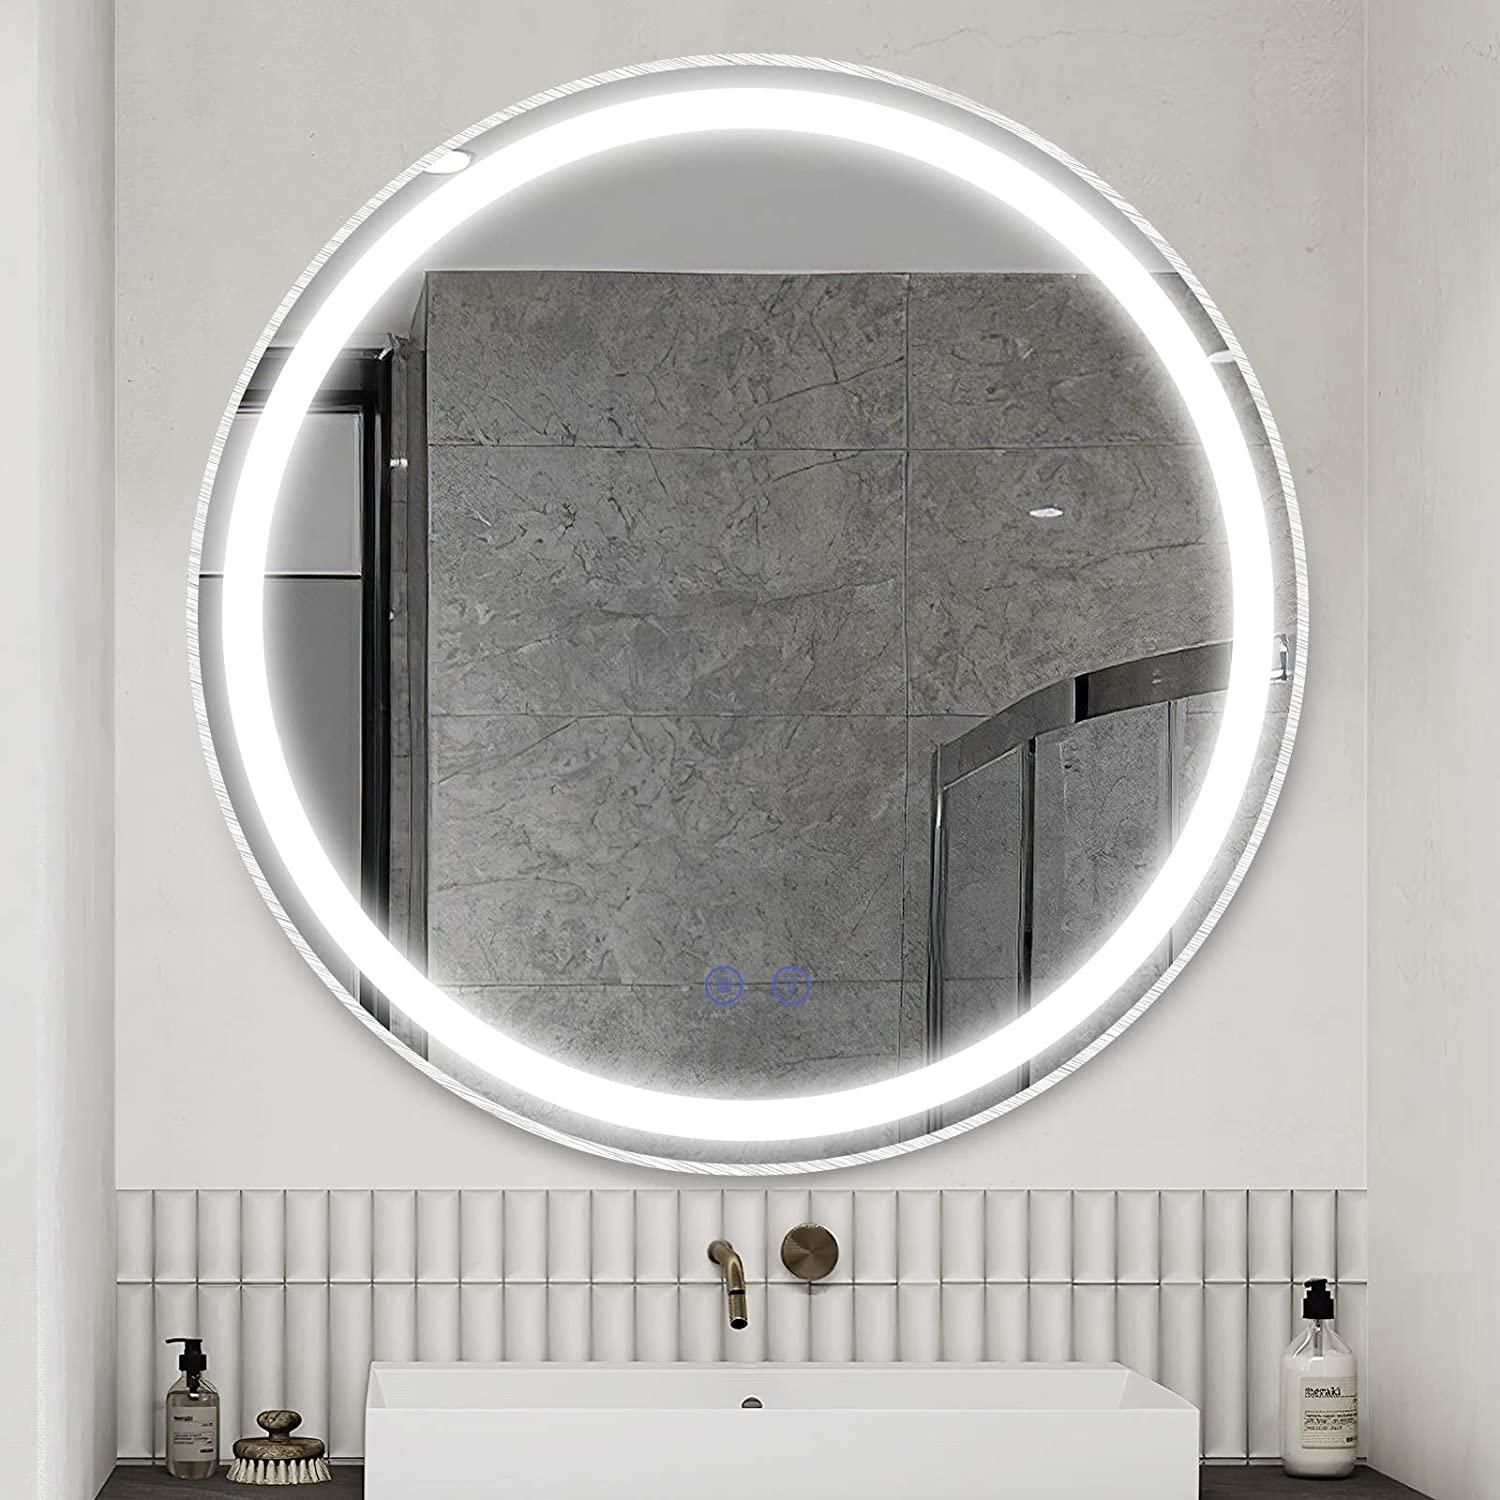 Amazon Com Citymoda 32inch Large Round Led Lighted Mirror Bathroom Wall Mounted Vanity Mirror Brushed Aluminum Frame Mirror With Light Dimmable Memory Touch Button Waterproof Anti Fog 3 Color Tones